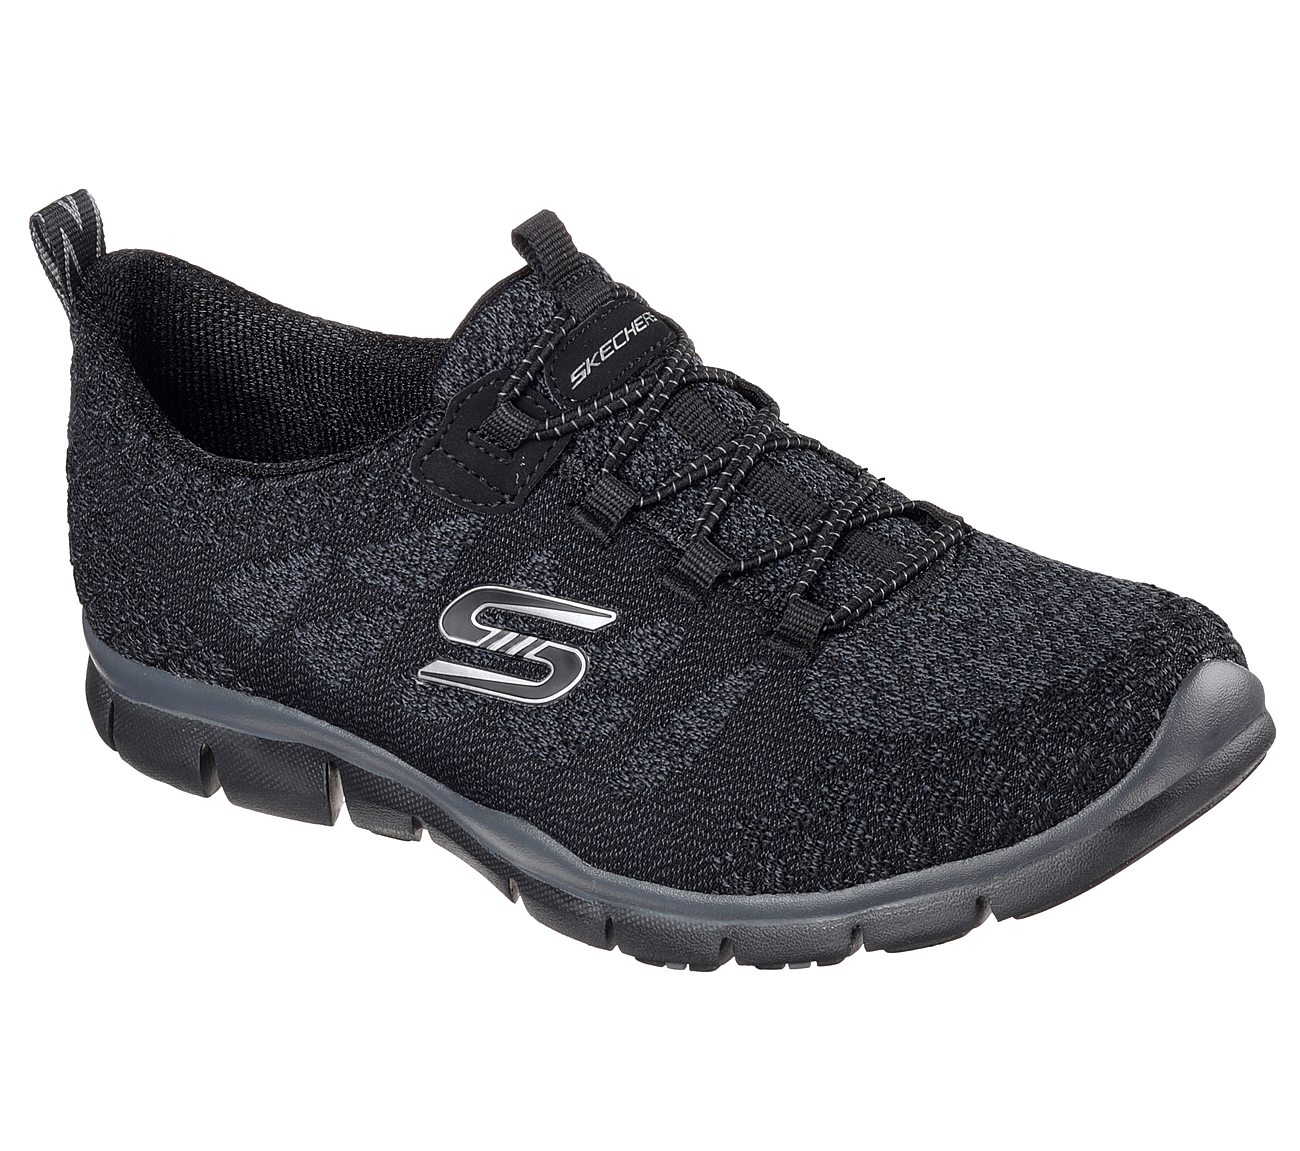 Skechers Gratis Sleek and Chic Casual Sneaker (Women's) oOtnpS1wbS